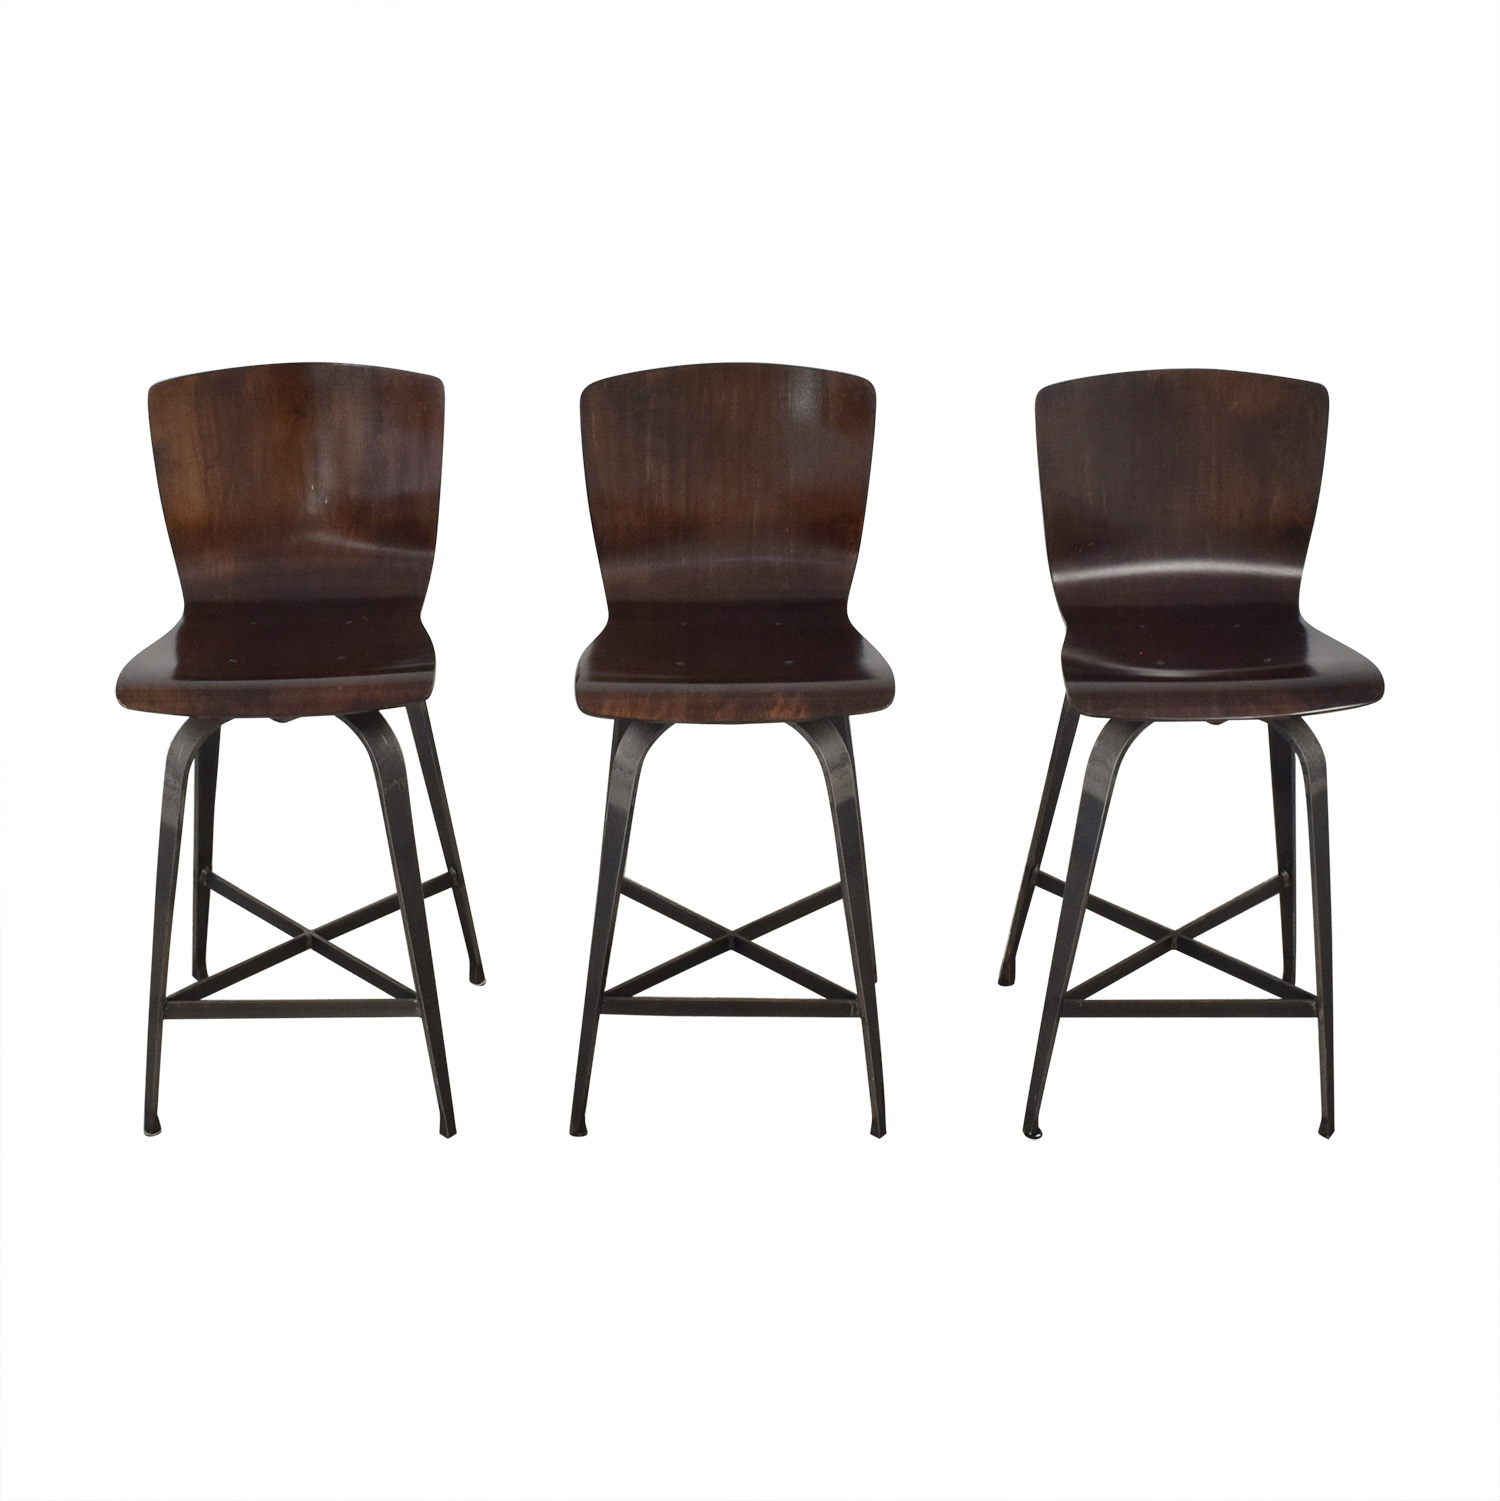 Astounding 65 Off Charleston Forge Charleston Forge Fresno Swivel Counterstools Chairs Lamtechconsult Wood Chair Design Ideas Lamtechconsultcom